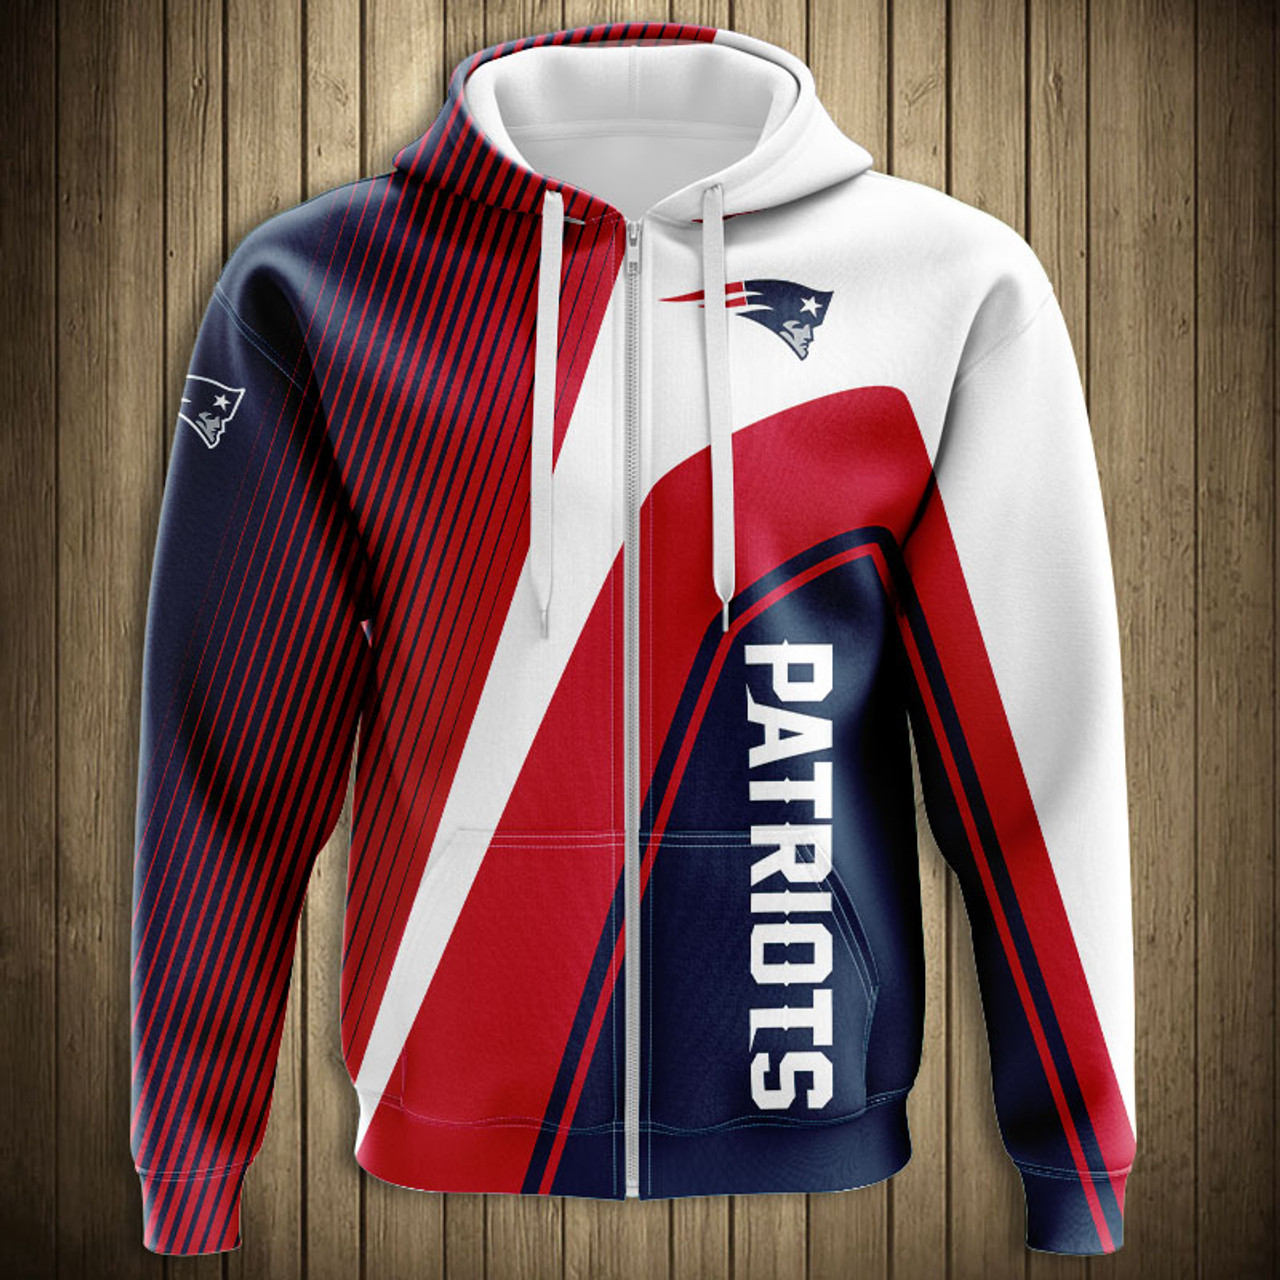 low priced ff617 f7334 **(OFFICIAL-N.F.L.NEW-ENGLAND-PATRIOTS-ZIPPERED-HOODIES/3D-CUSTOM-PATRIOTS-LOGOS  & OFFICIAL-PATRIOTS-TEAM-COLORS/NICE-3D-DETAILED-GRAPHIC-PRINTED-DOUB...